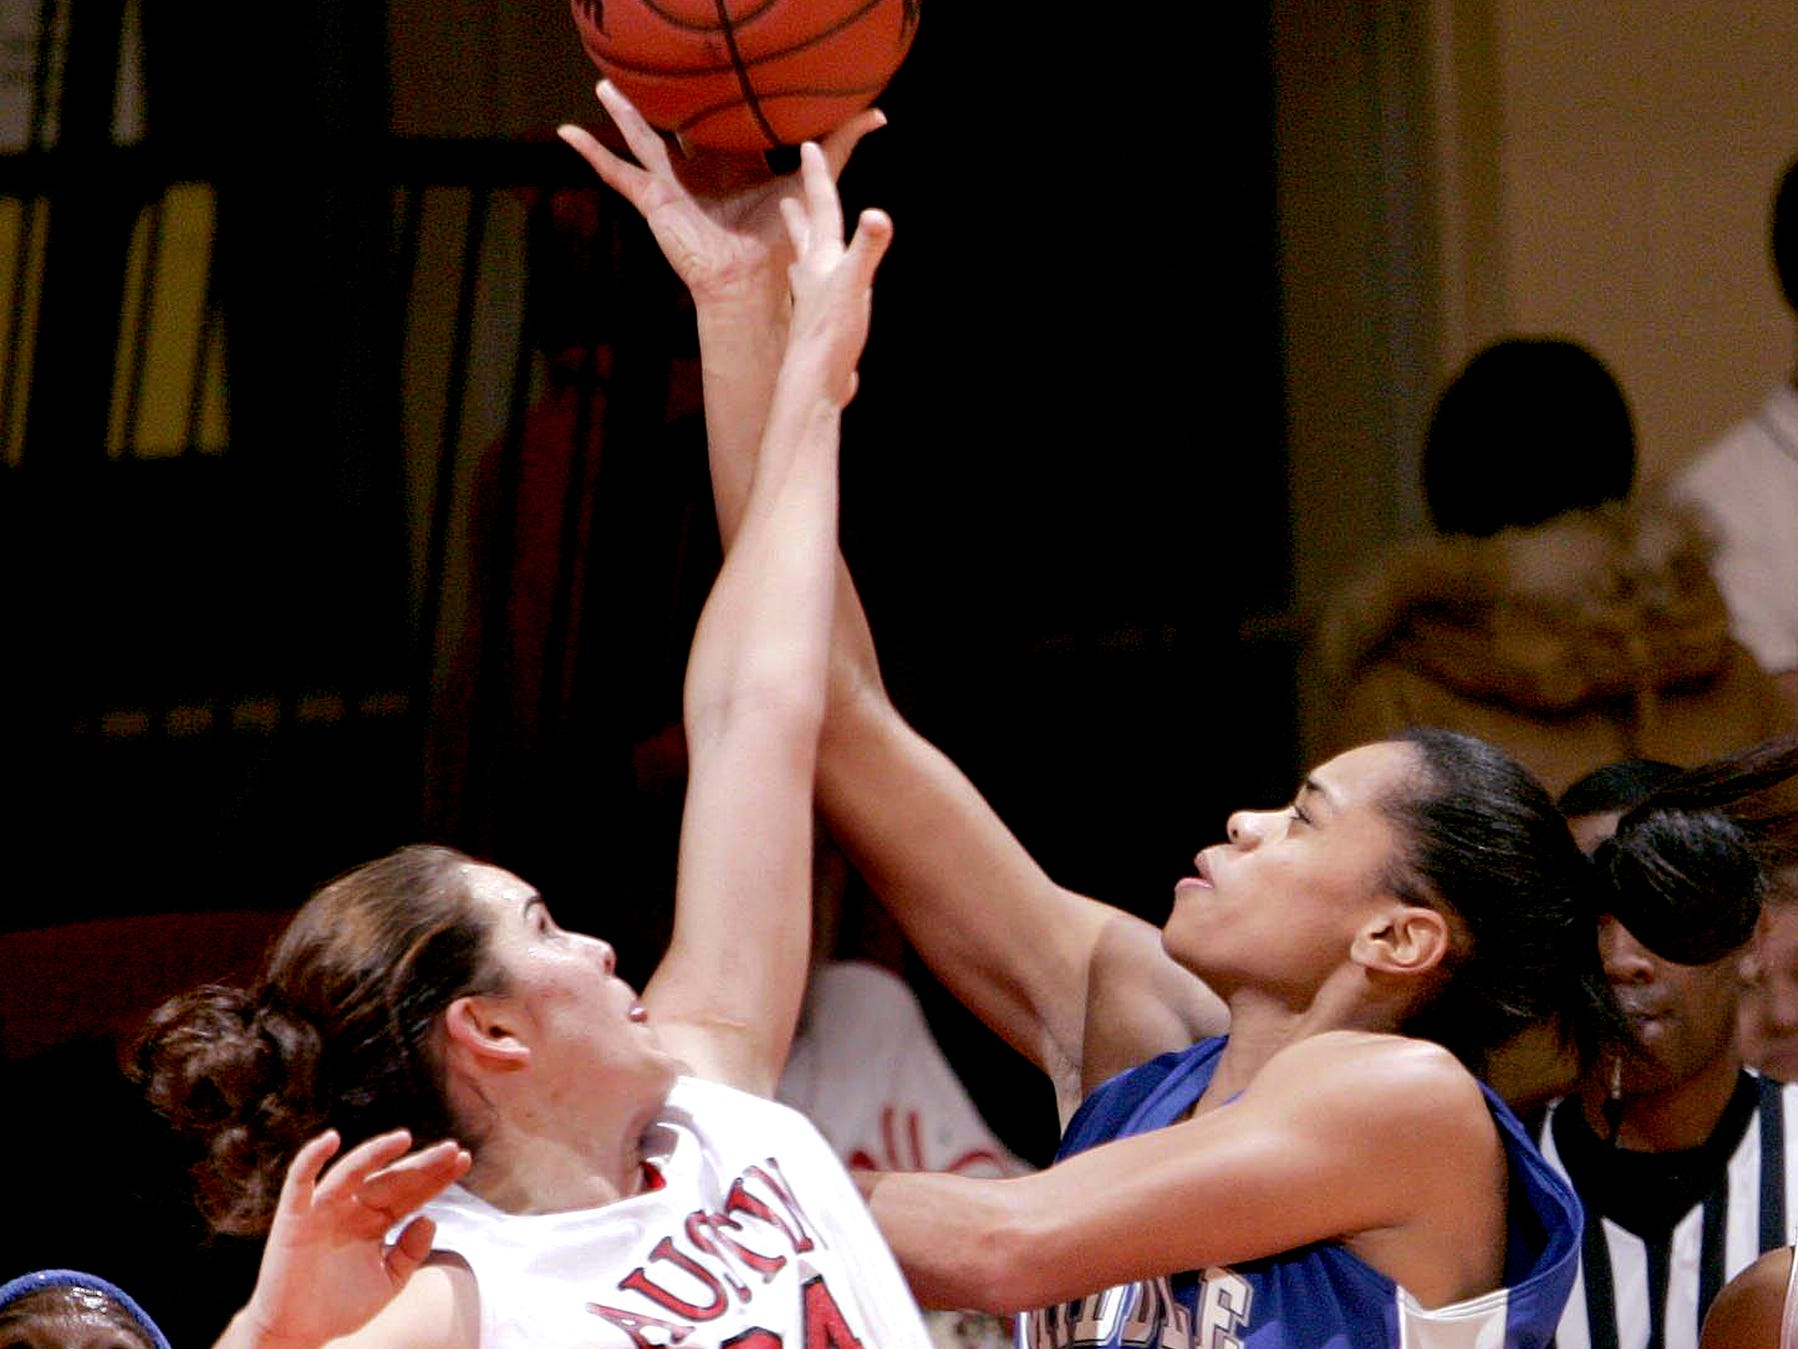 Middle Tennessee's Tia Stovall drives around Austin Peay's Breana Link during the first half of Wednesday night's game at the Dunn Center. The Lady Govs won 71-69.